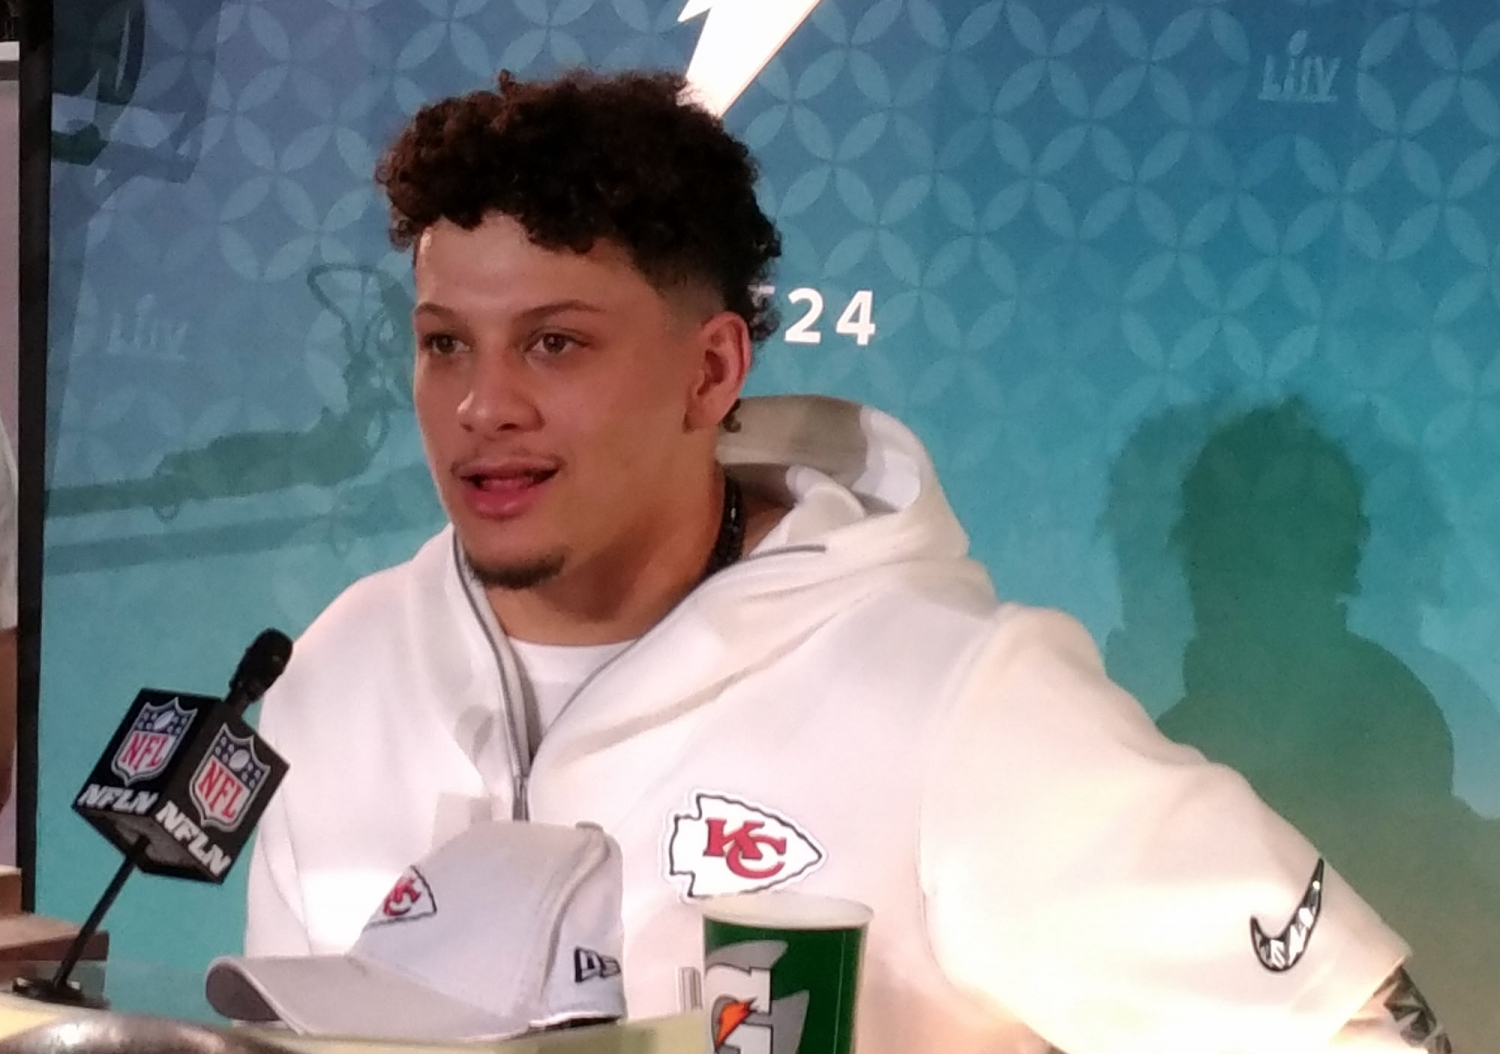 Chiefs quarterback Patrick Mahomes at the opening night event for Super Bowl 54. (Craig Davis for Five Reasons Sports Network)